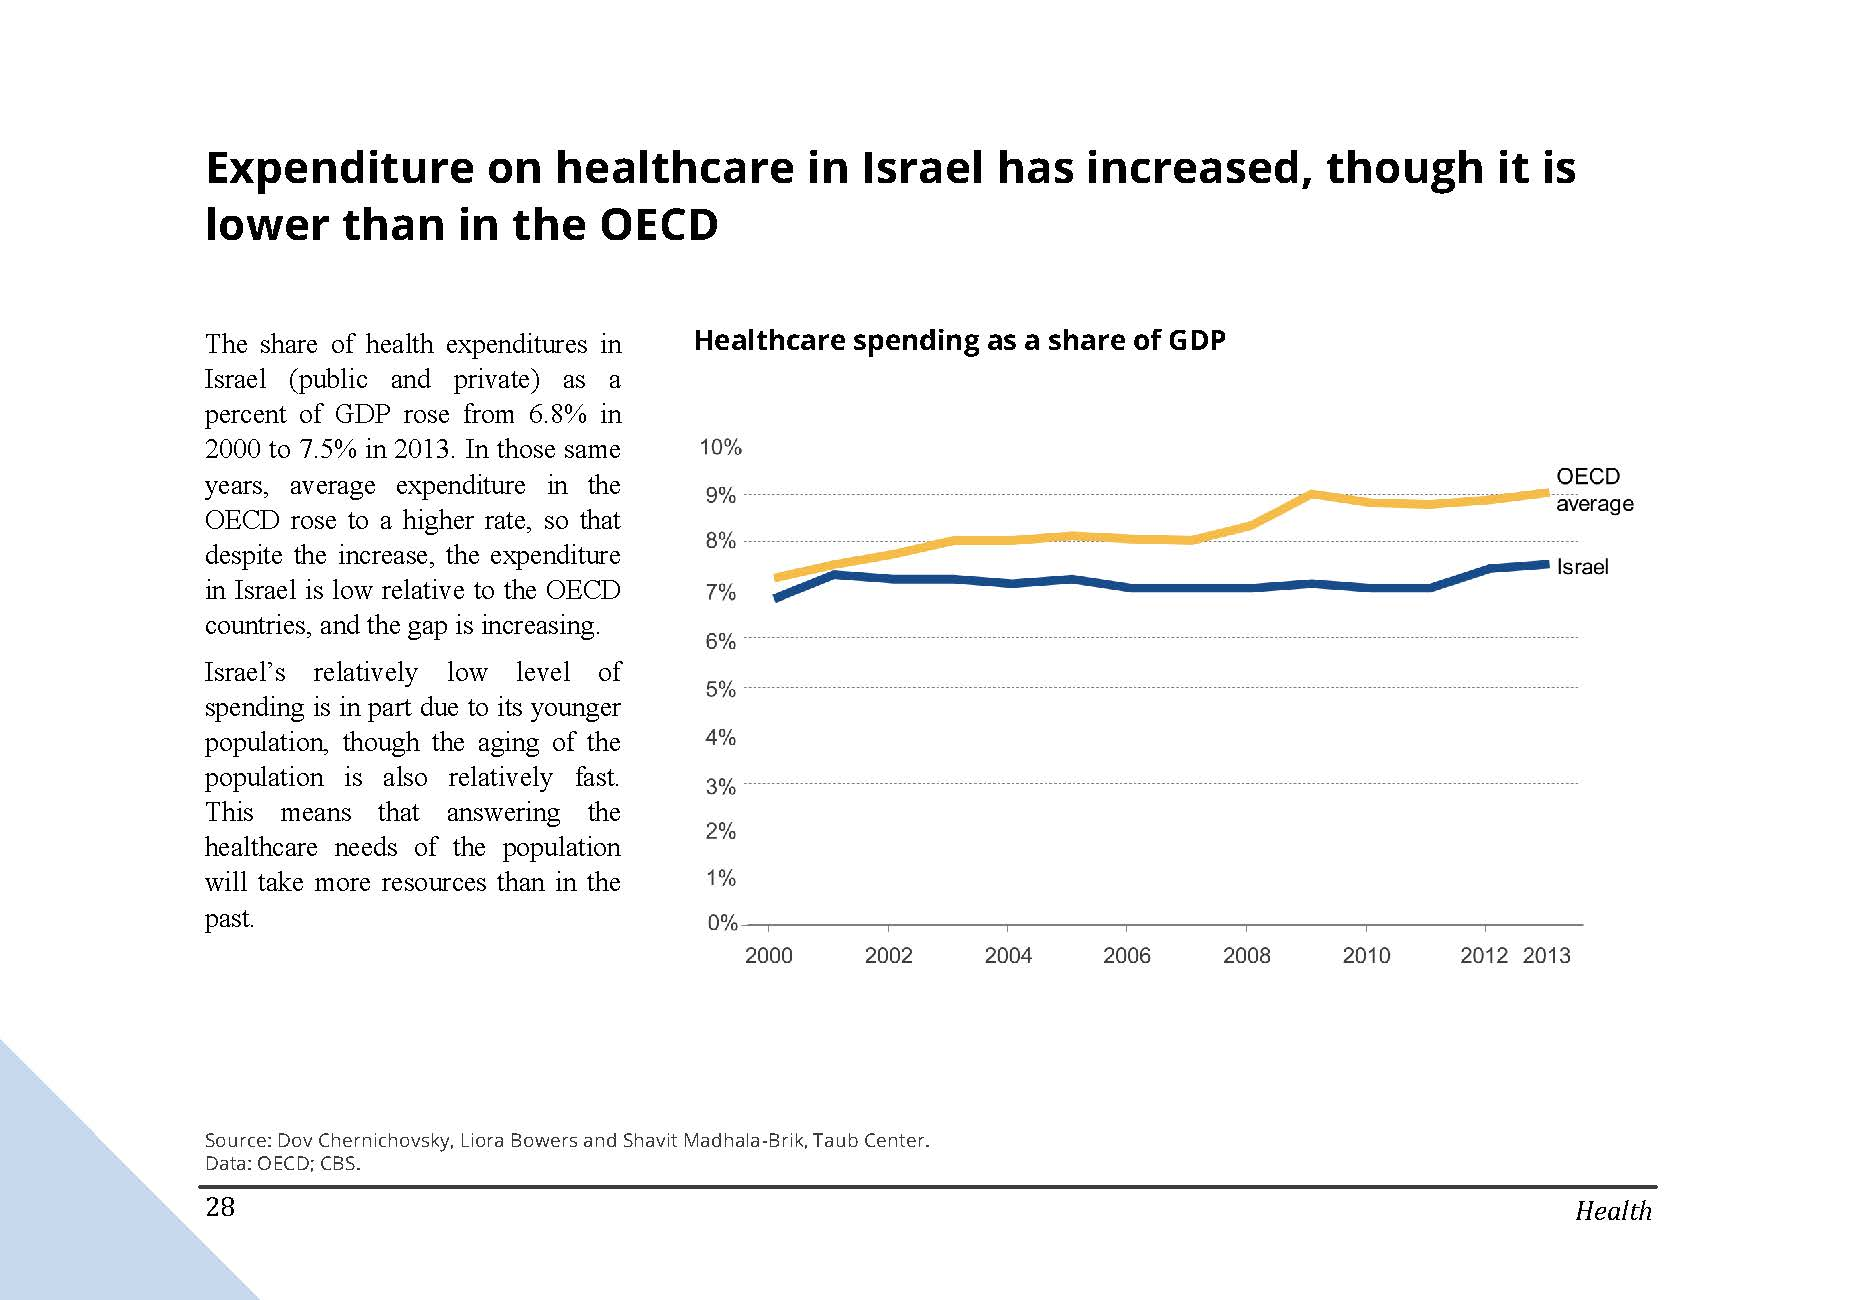 Expenditure on healthcare in Israel has increased, though it is lower than in the OECD